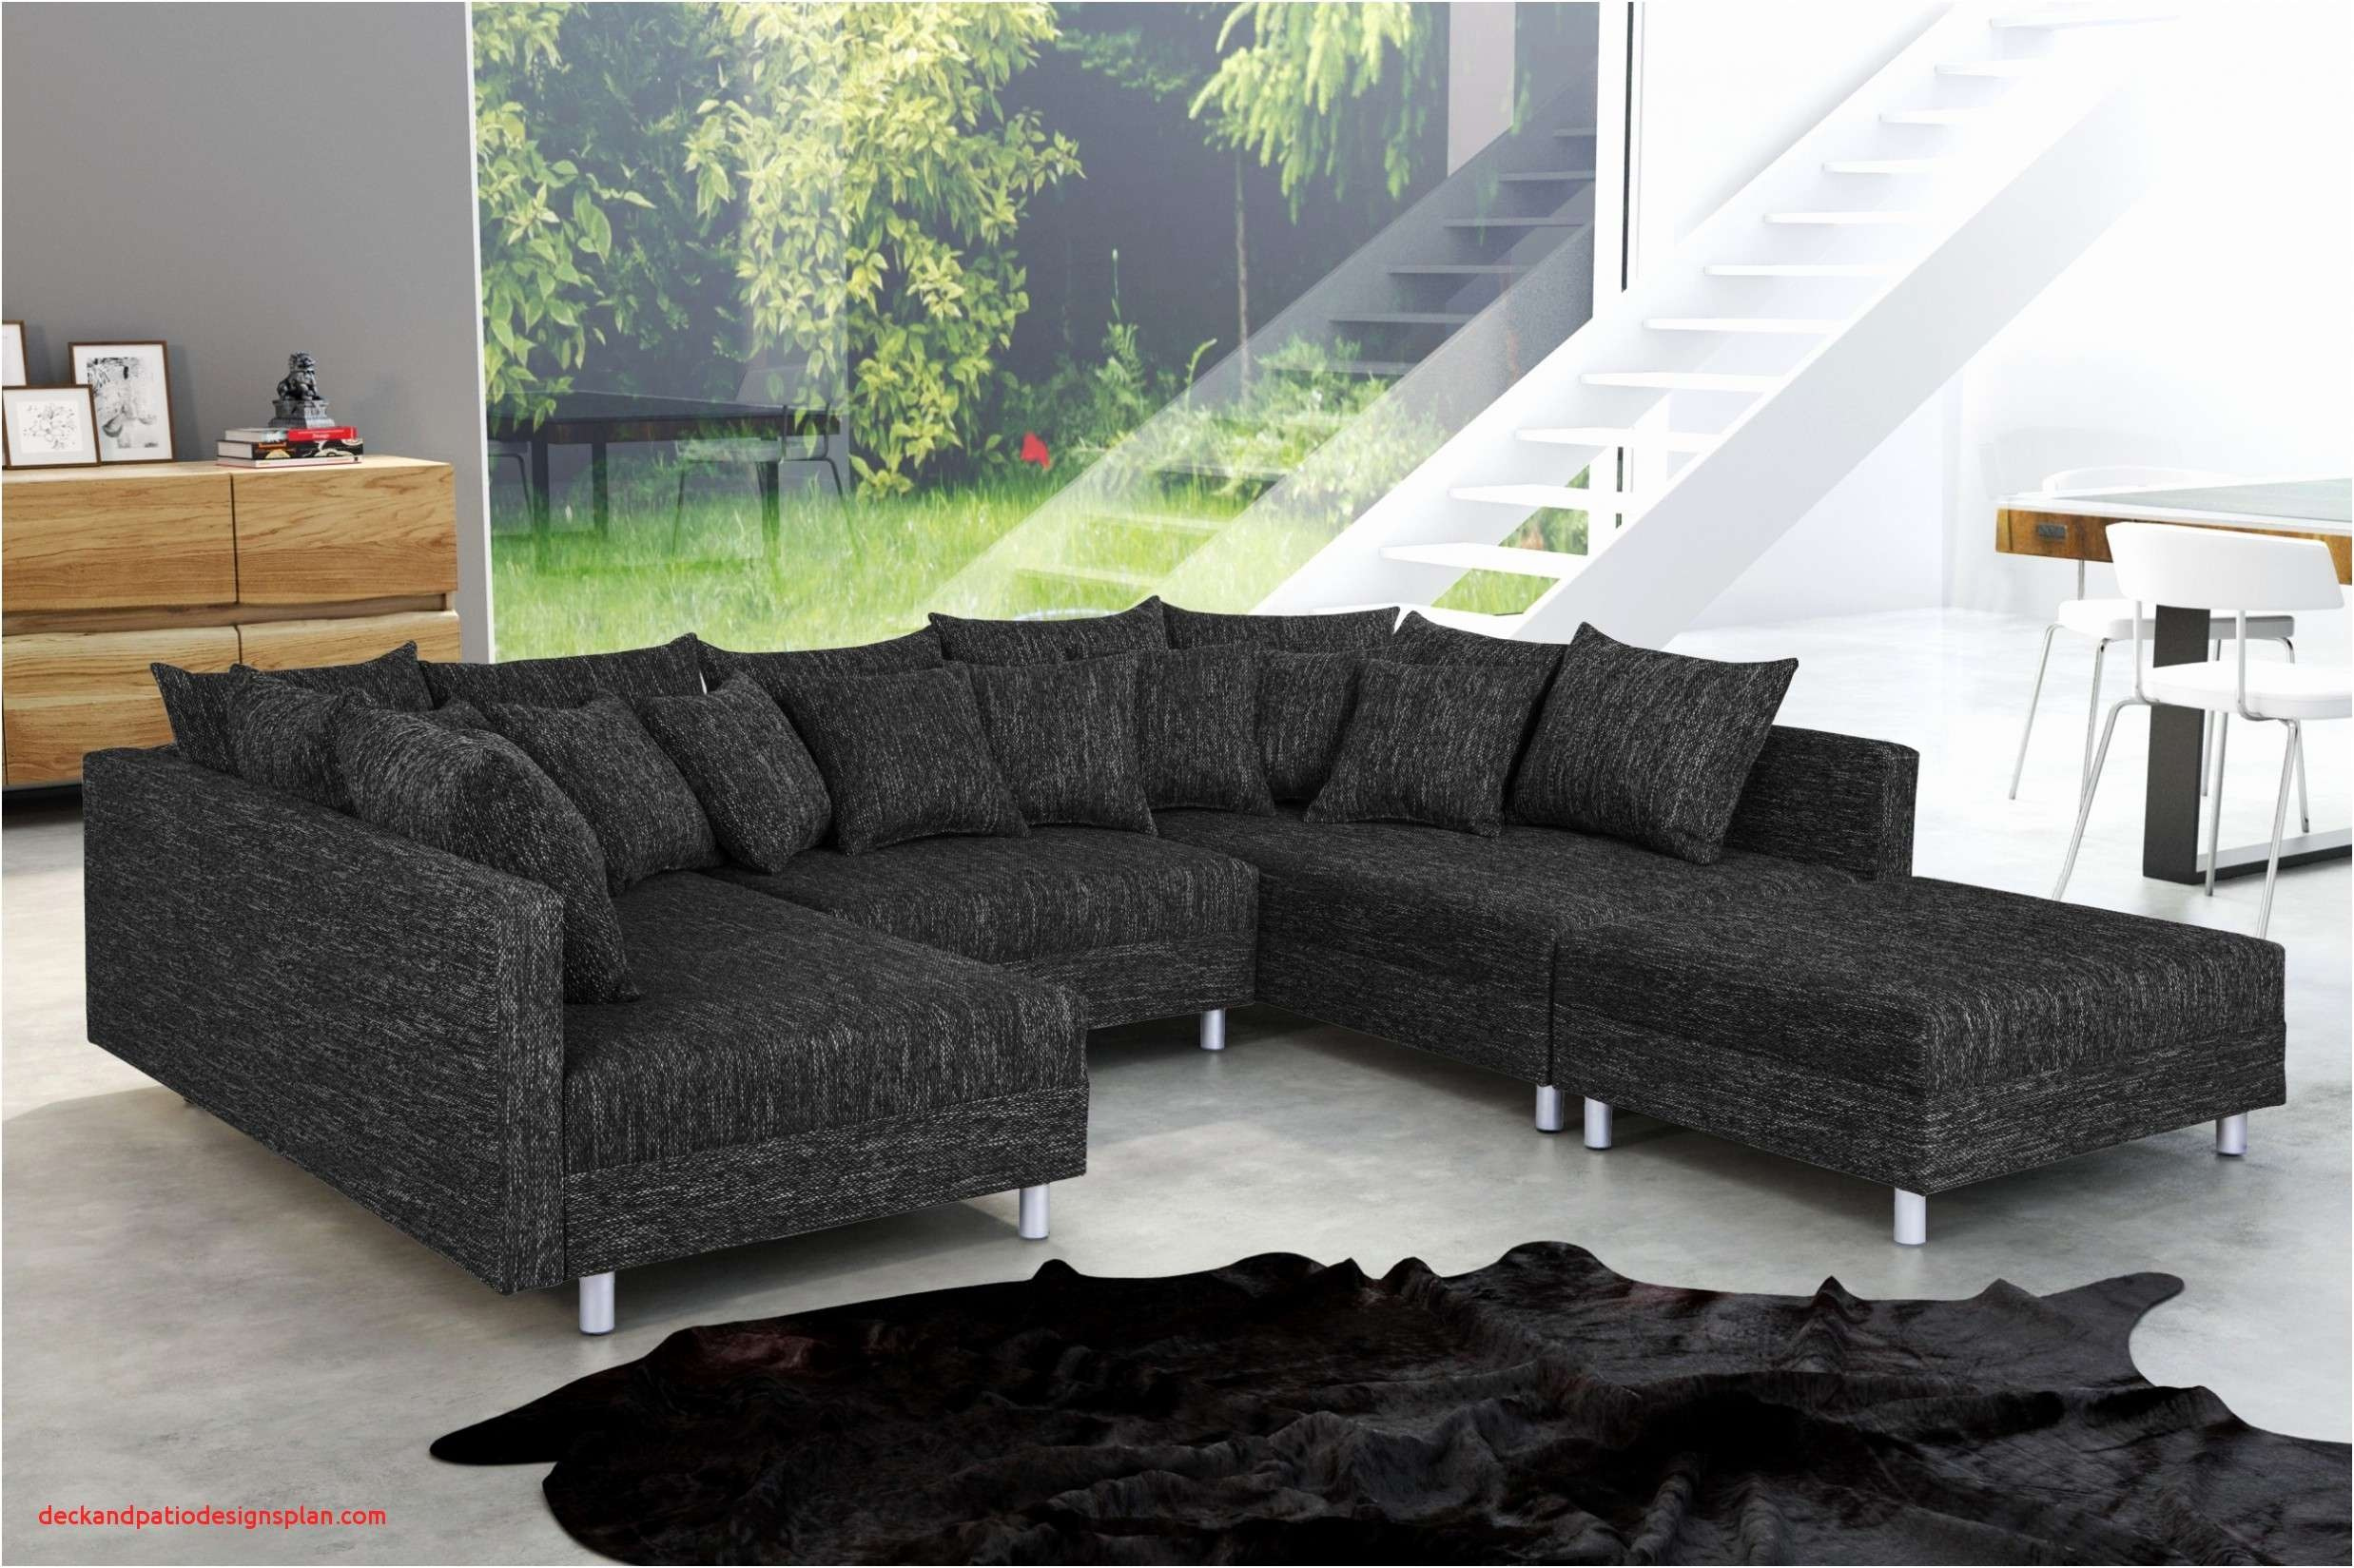 Full Size of Ektorp Sofa Review 2017 Bed Dimensions Cover Amazon 2019 Couch Ikea White Uk Canada With Chaise Assembly Bezug Ebay Kivik Comfort Englisch U Form Xxl München Sofa Ektorp Sofa